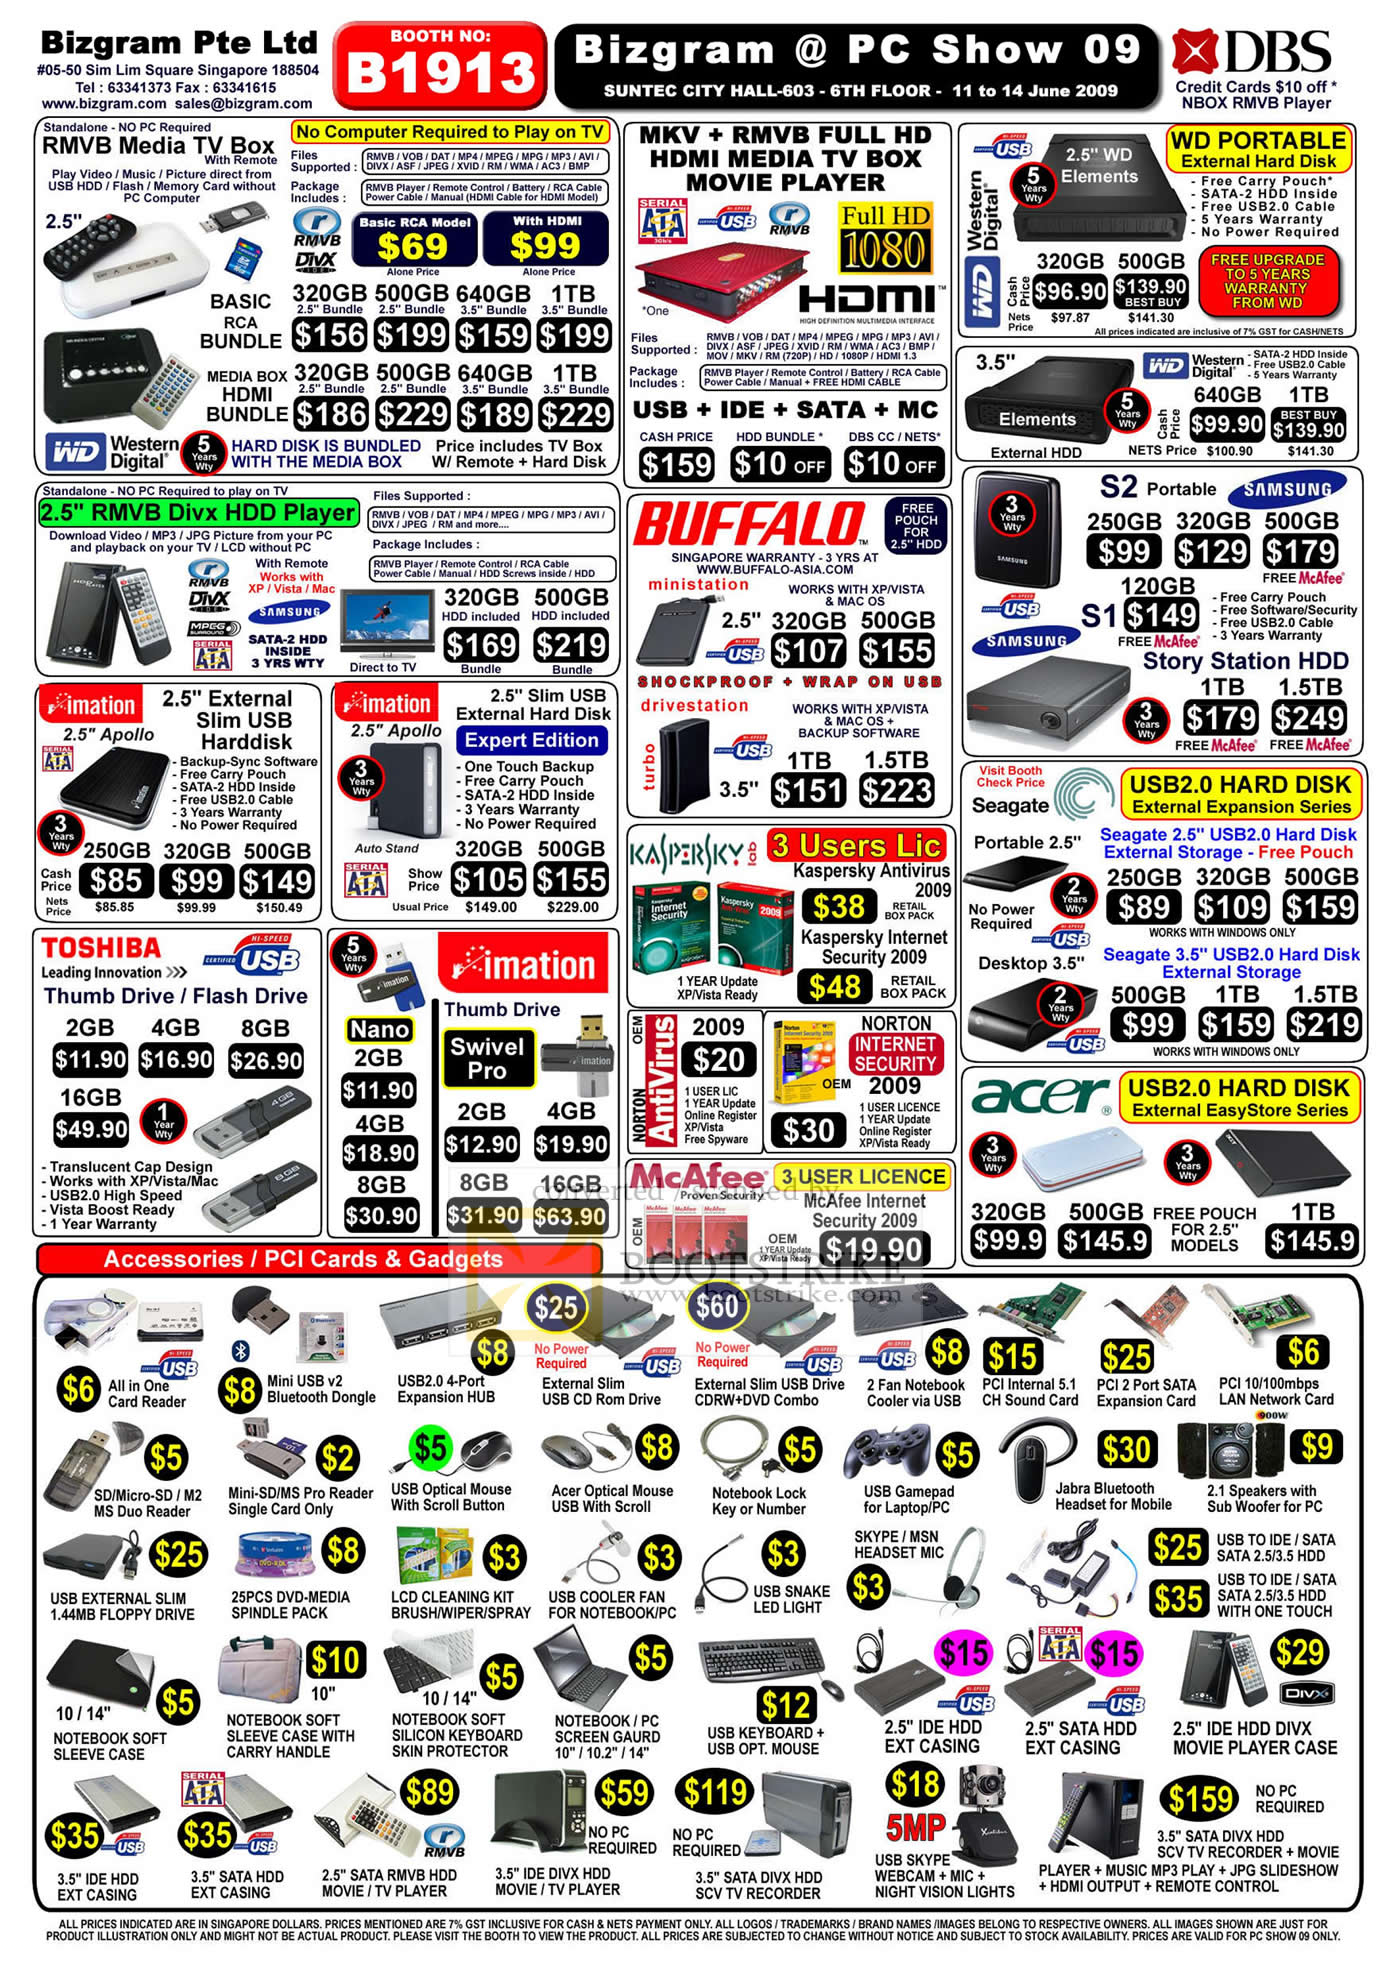 PC Show 2009 price list image brochure of Bizgram External Drives Software Accessories